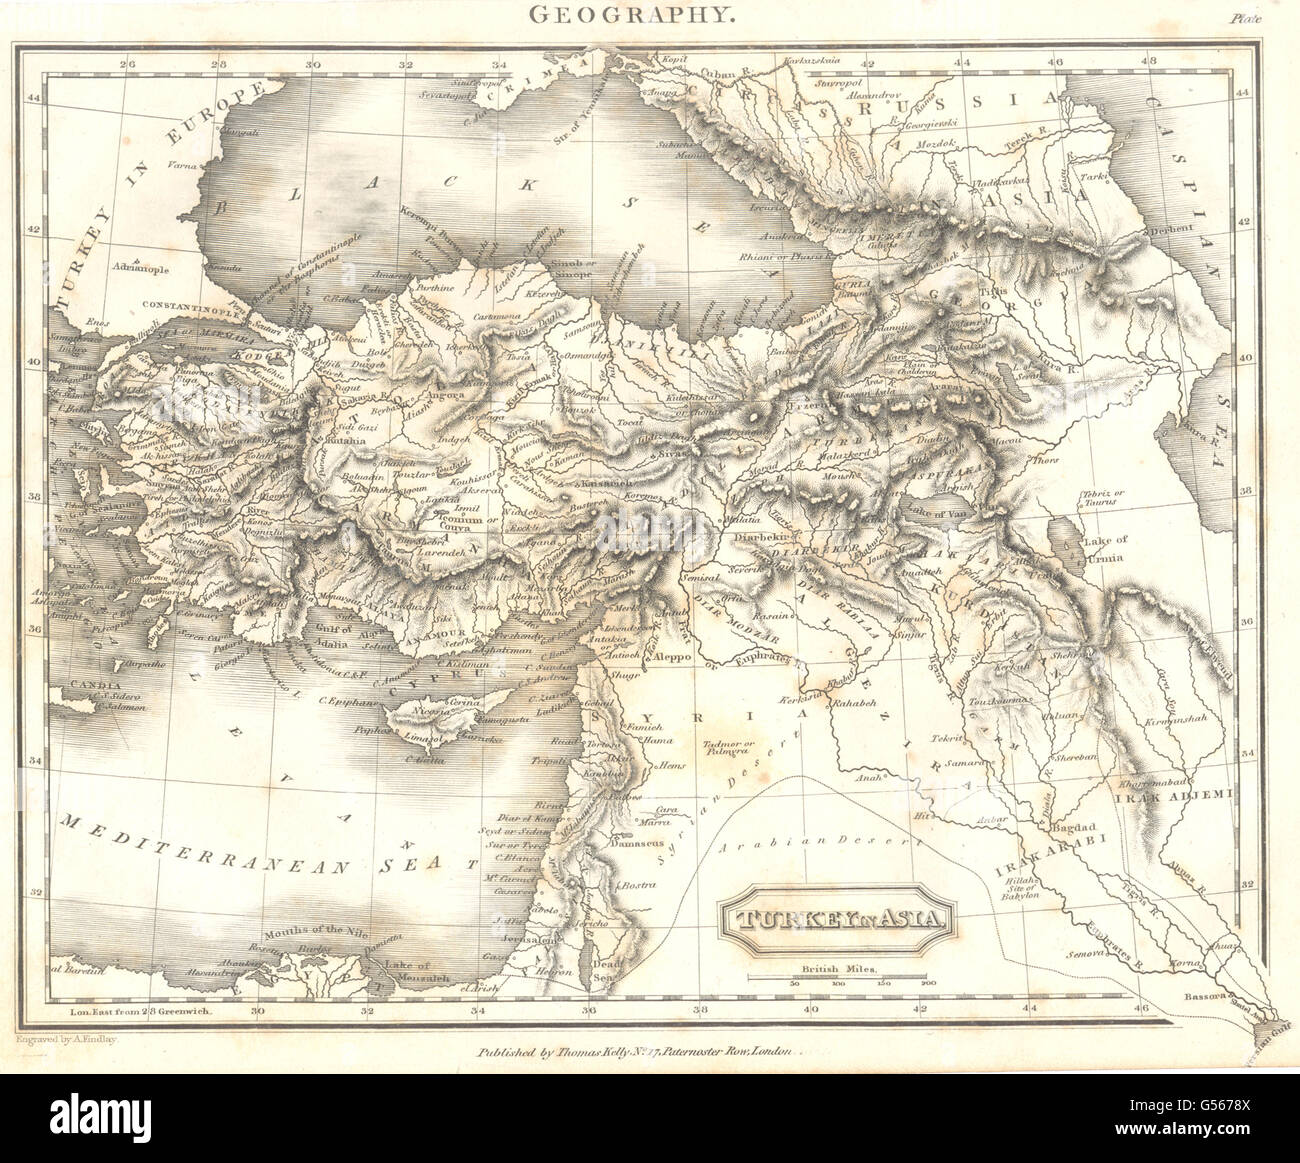 Map Of Georgia 1830.Turkey Turkey In Asia Ottoman Empire Levant Syria Iraq Georgia